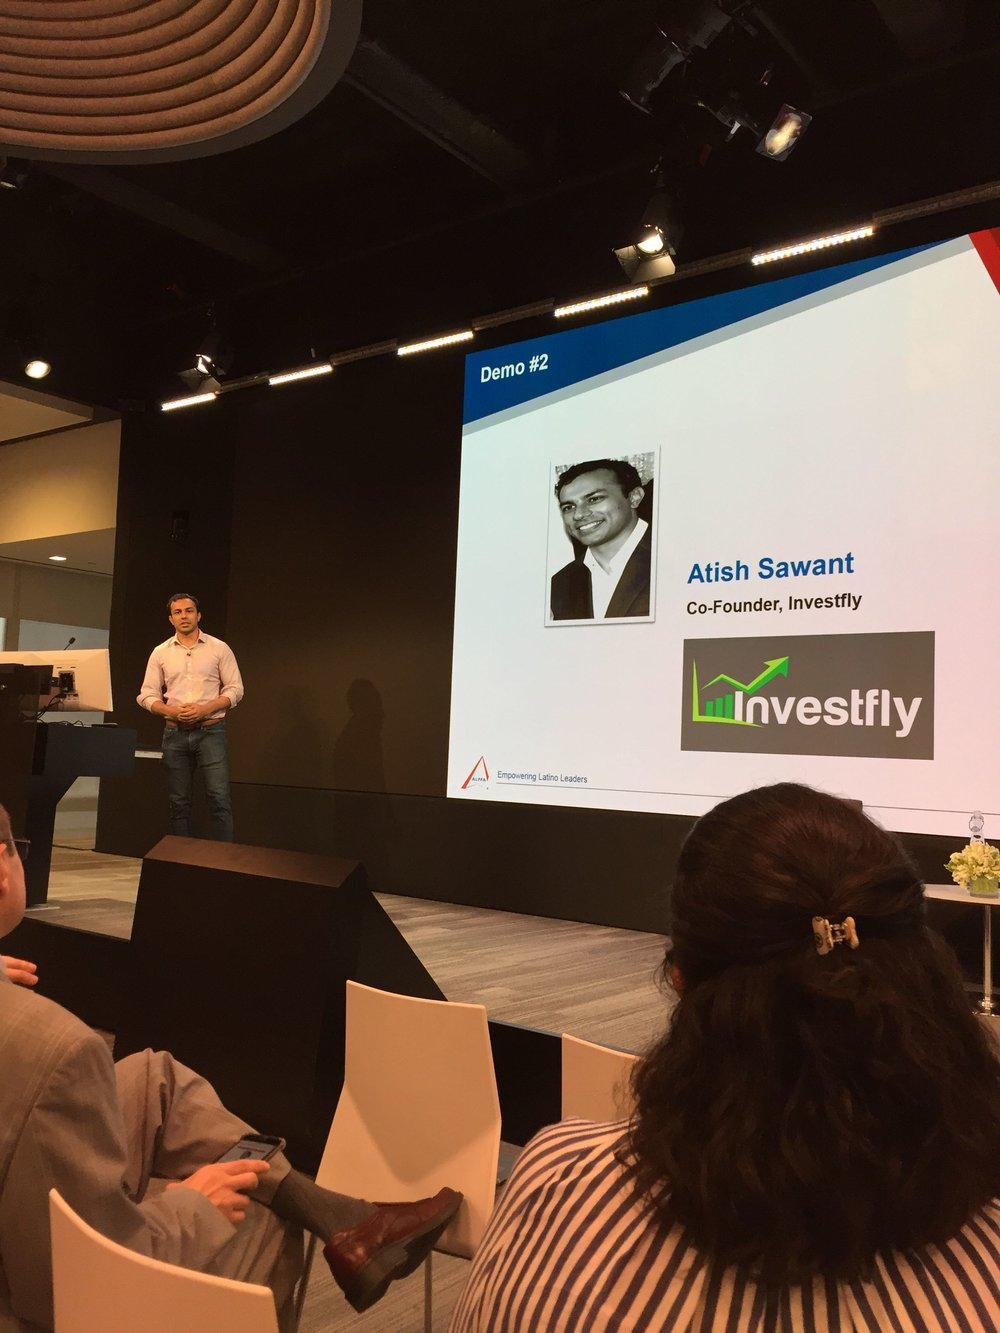 Atish Sawant presenting Investfly to the ALPFA & Bloomberg crowd